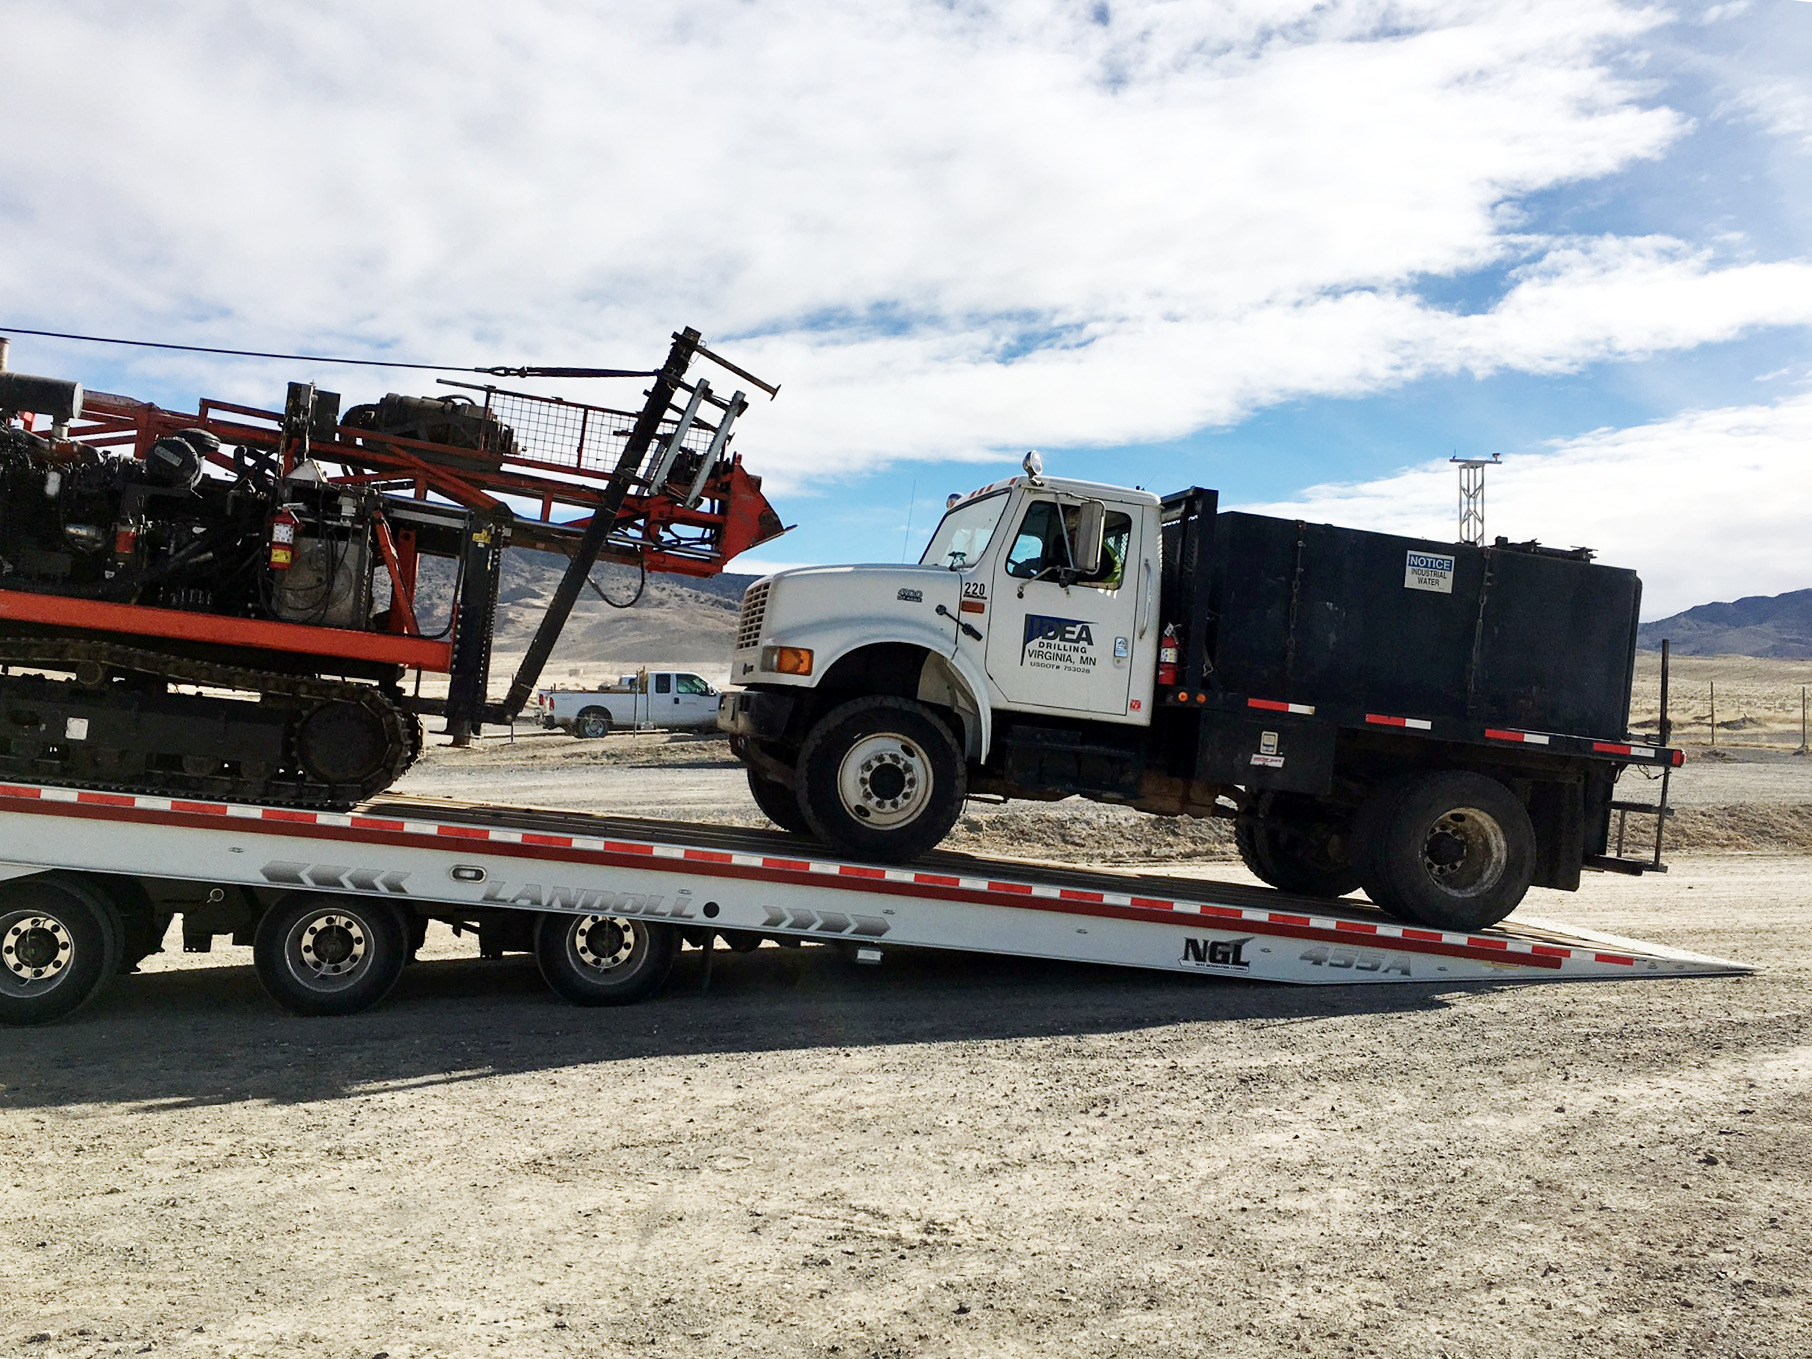 Lo-bed with water truck and driller